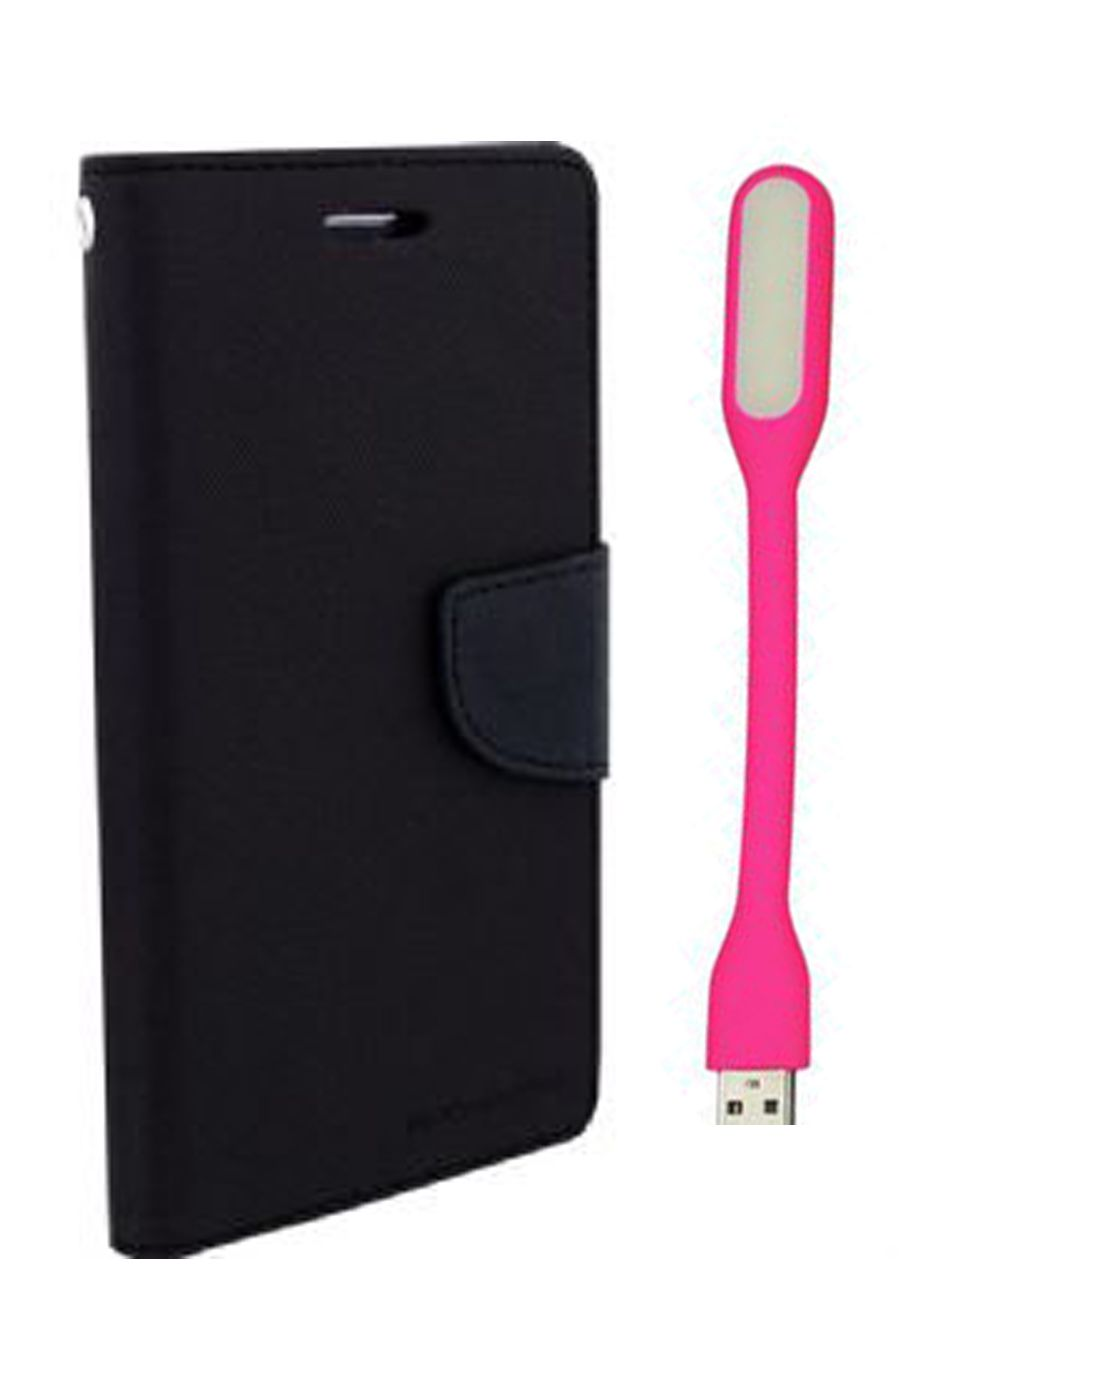 Wallet Flip Case Back Cover For Lenovo A7000 -(Black) + Flexible Mini LED Stick Lamp Light By Style Crome